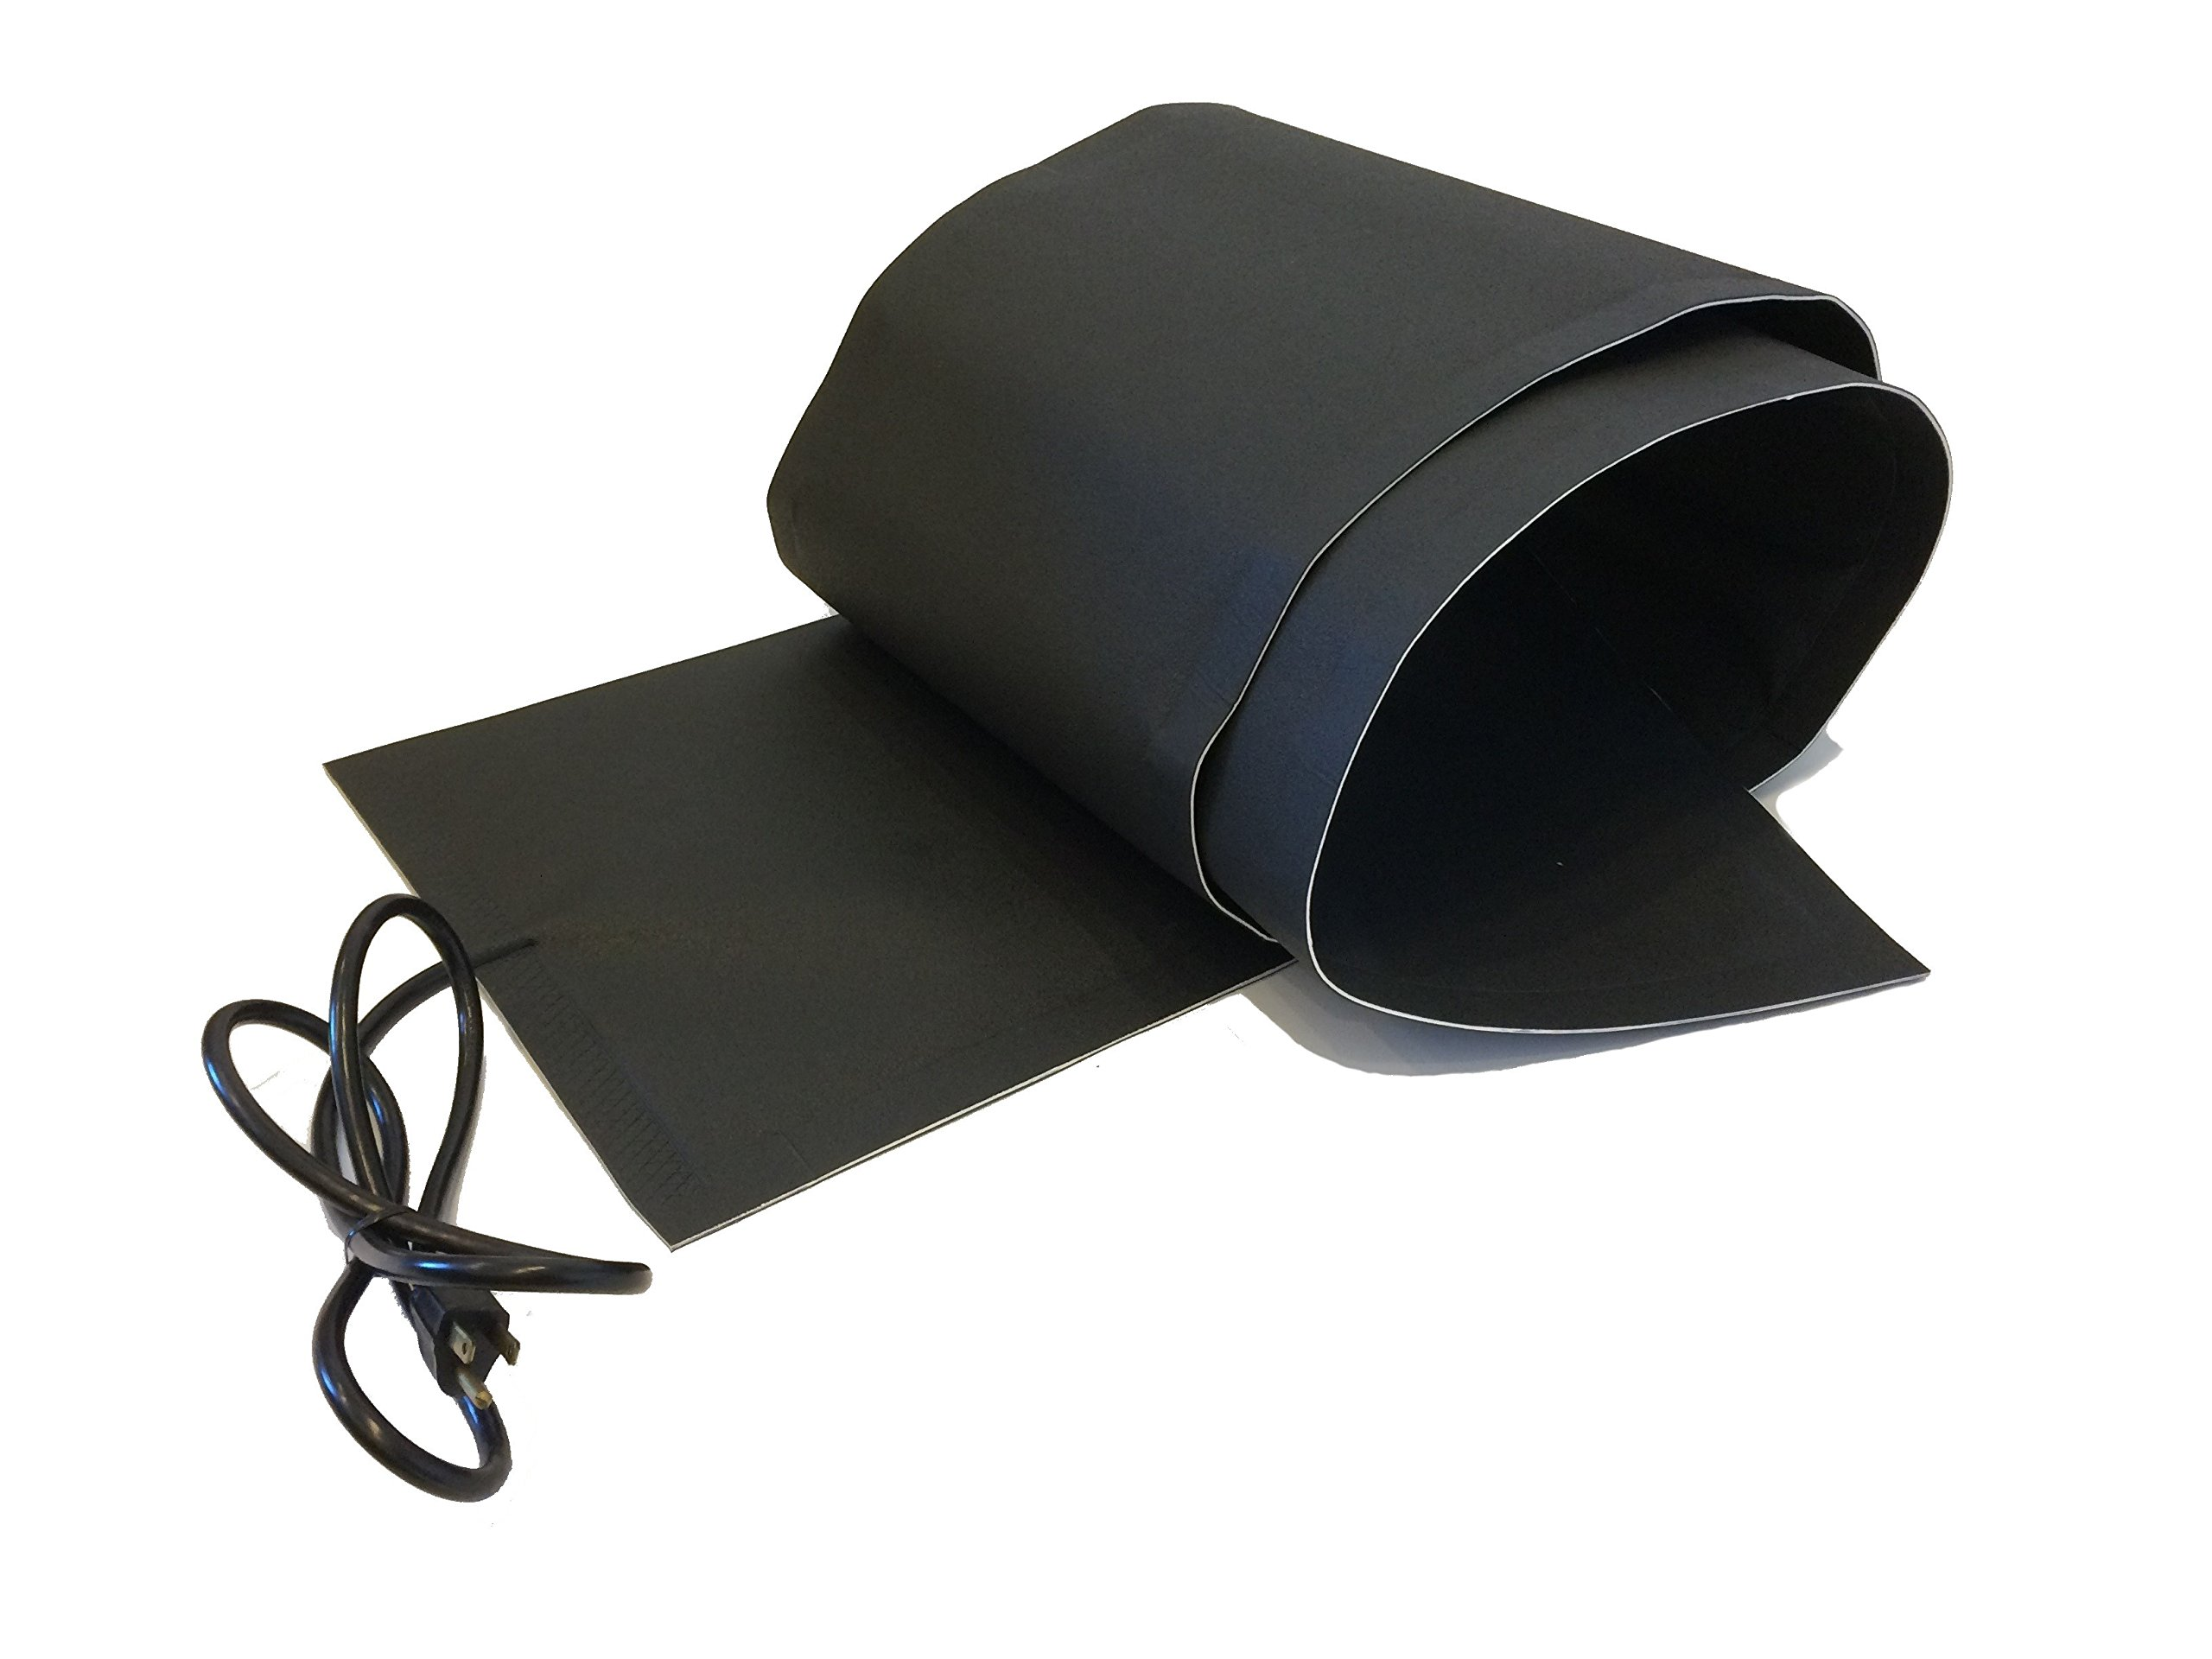 RHS Snow Melting System, roof and valley snow melting mats, Sizes 8' feet x 13'' inches, Color black, UL components, 8 ft. mat melts 2'' inches of snow per hour, buy factory direct,